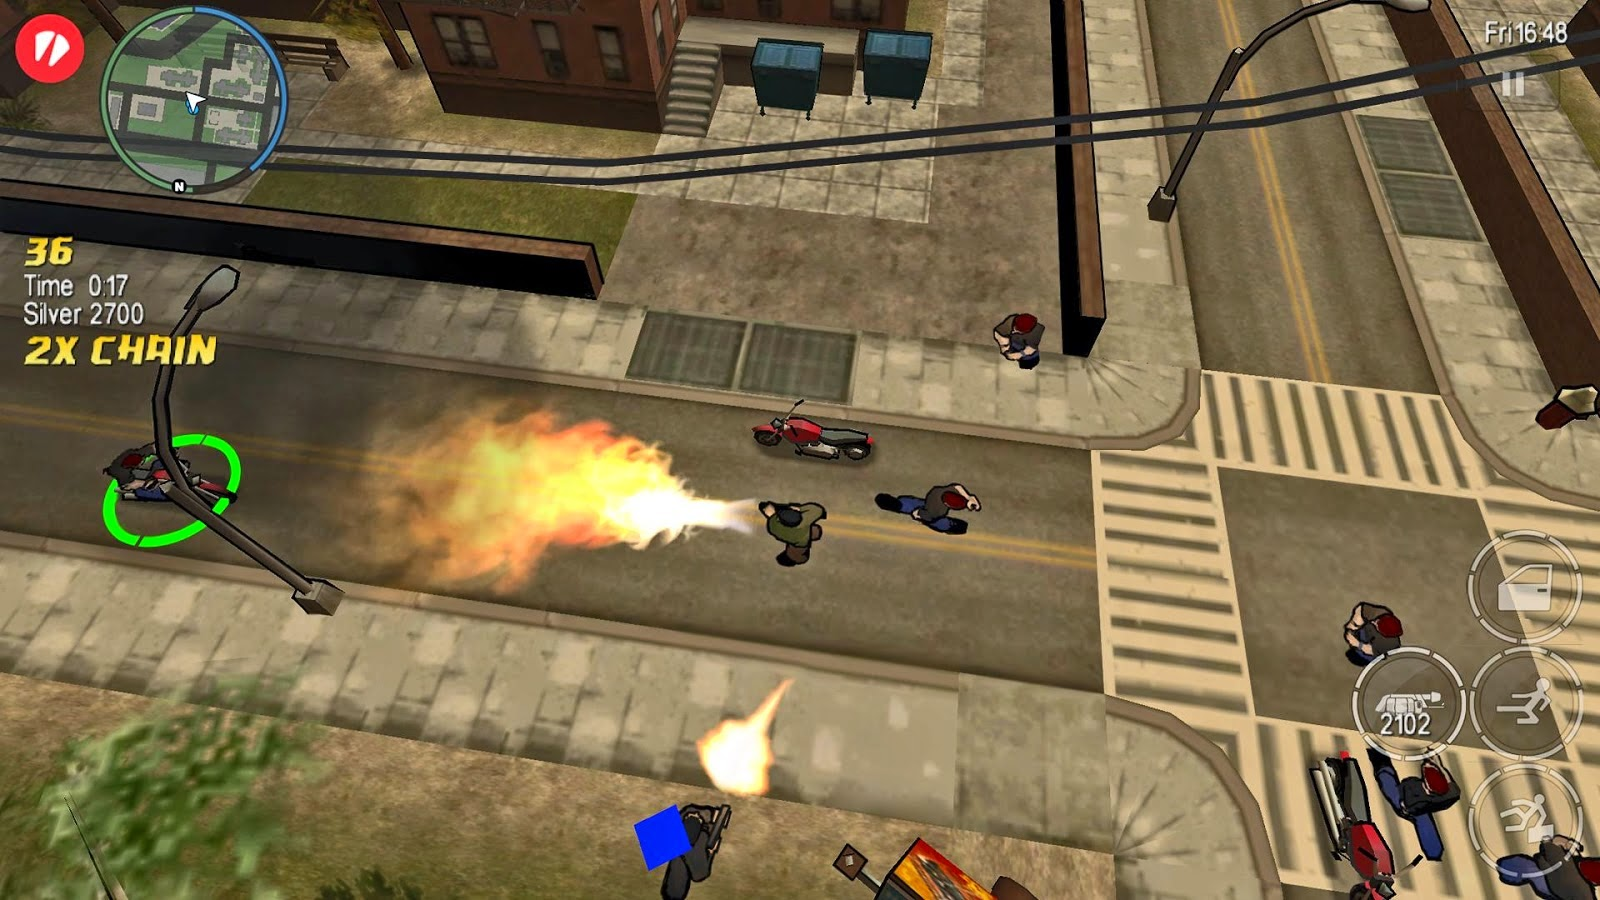 GTA Chinatown Wars v1.01 Apk +Obb Data Free [Full Version]